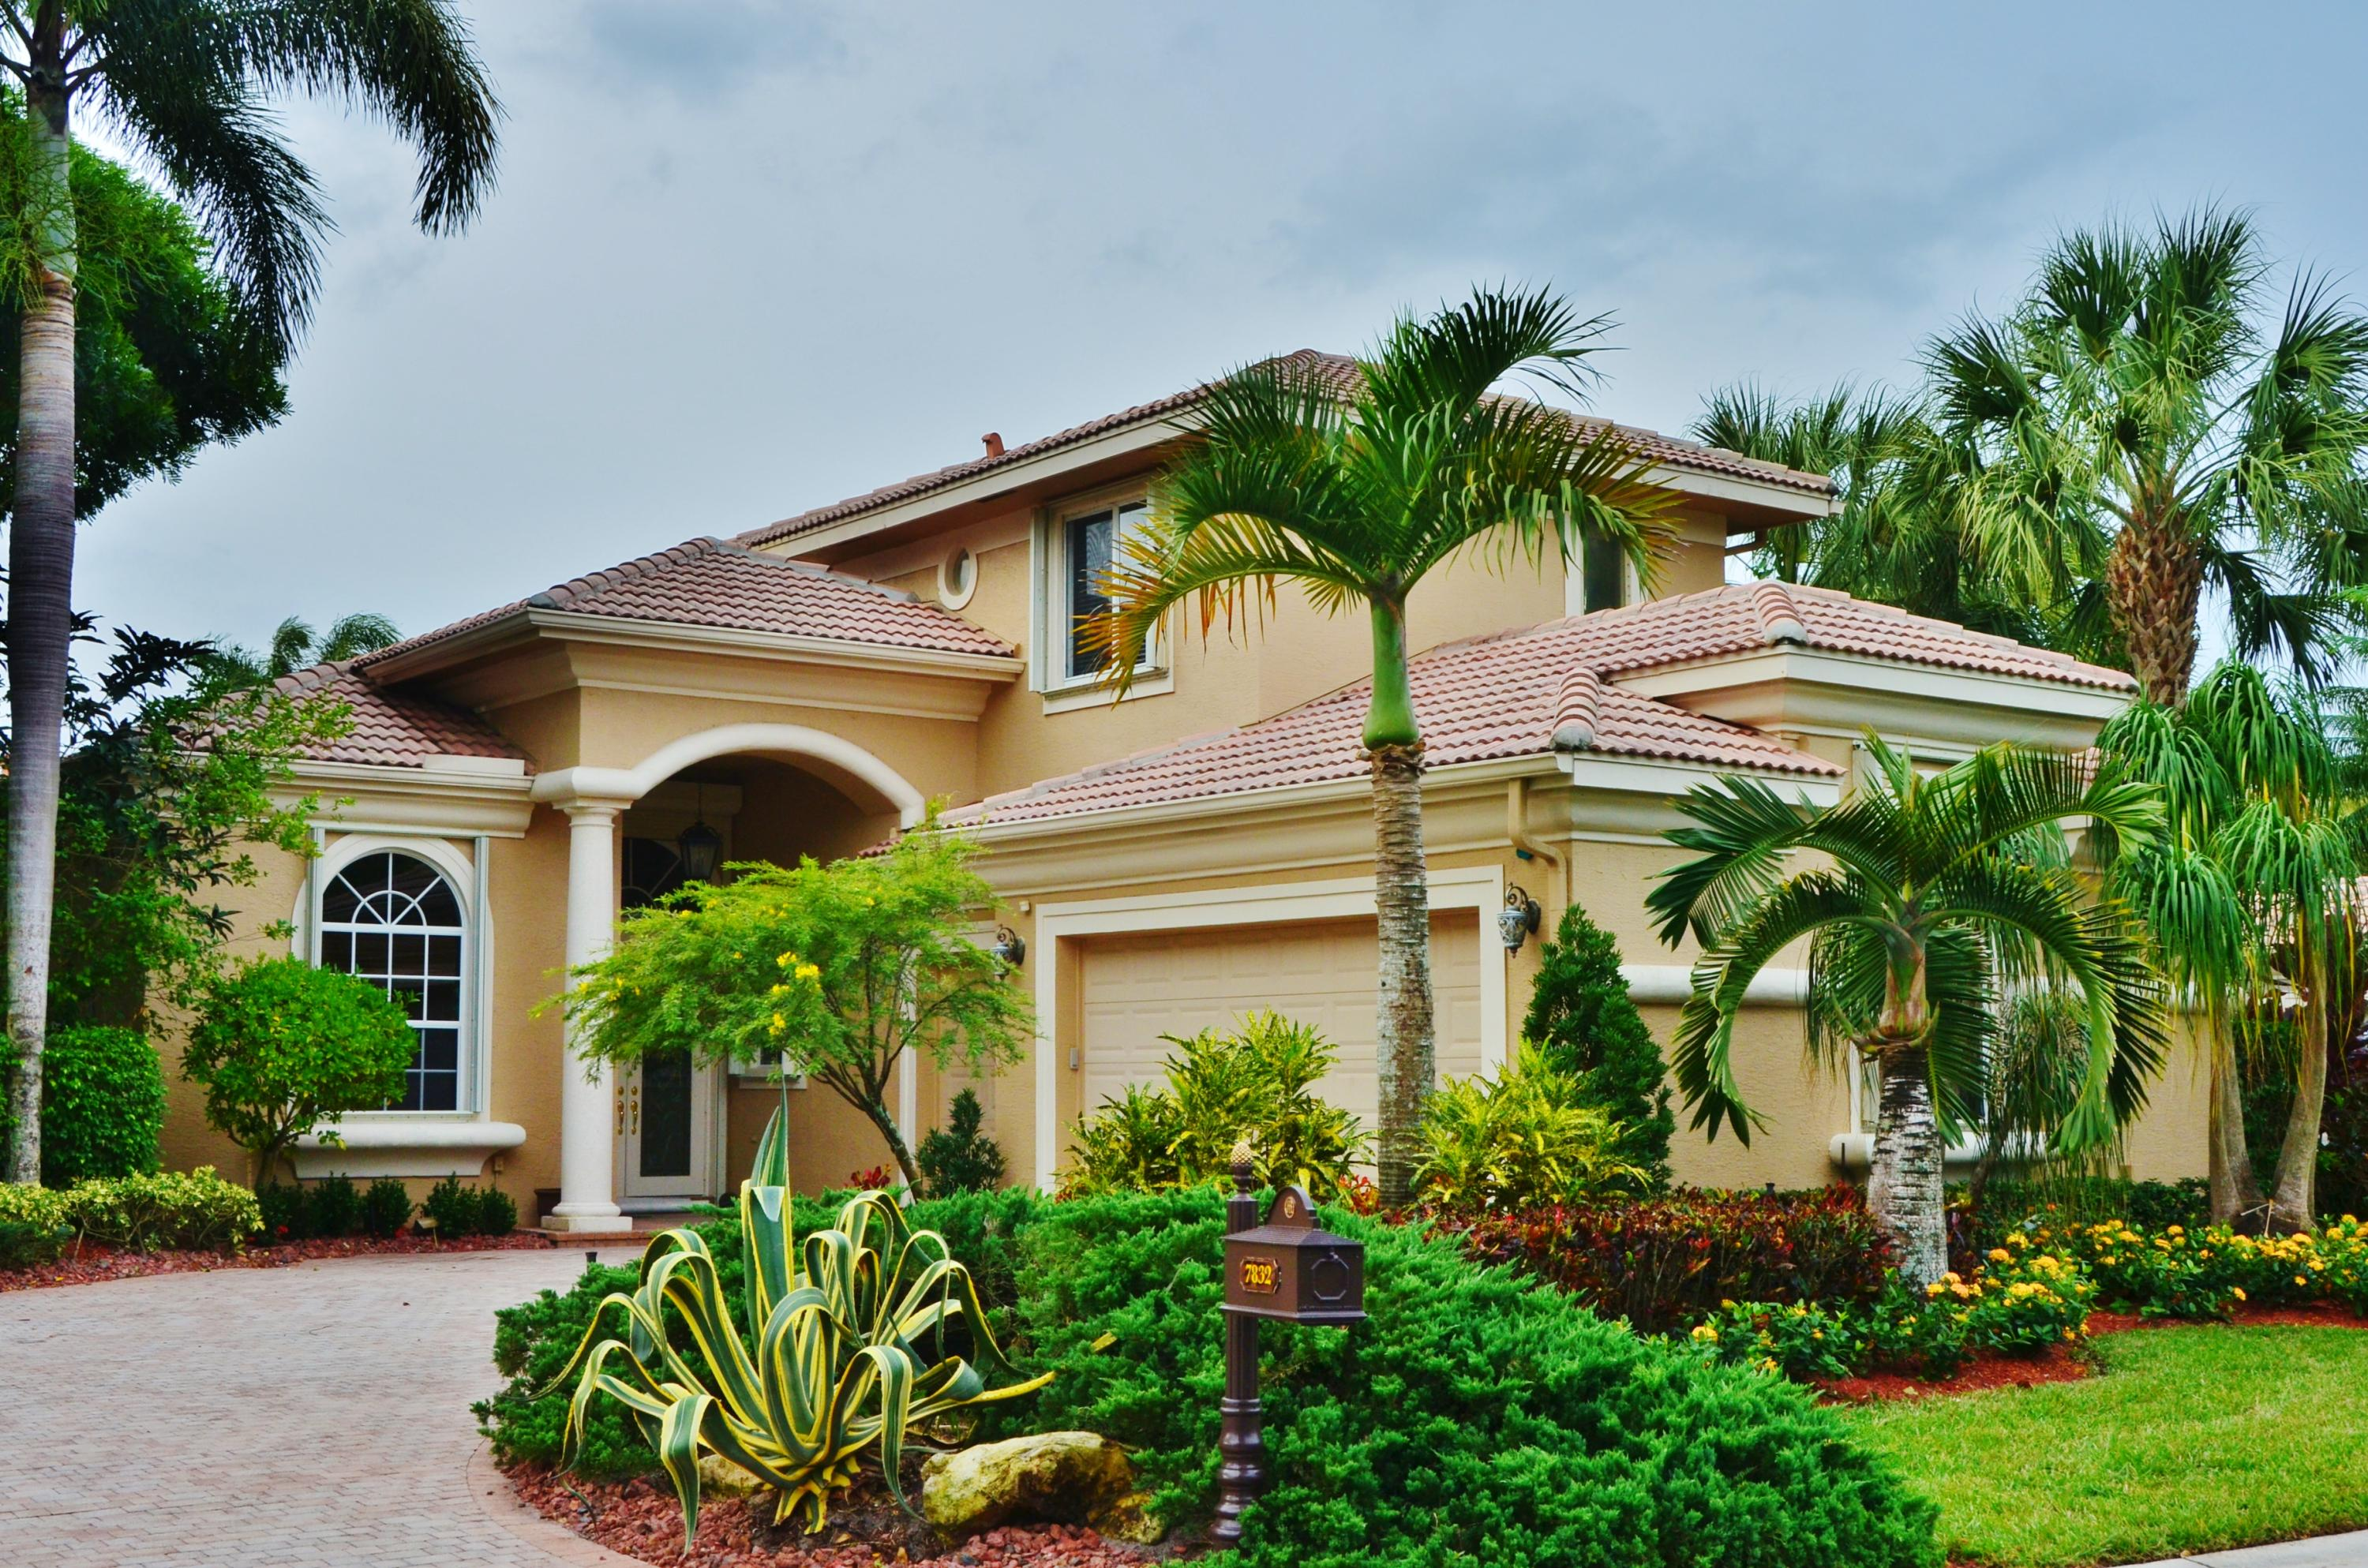 7832 Villa D Este Way  Delray Beach, FL 33446